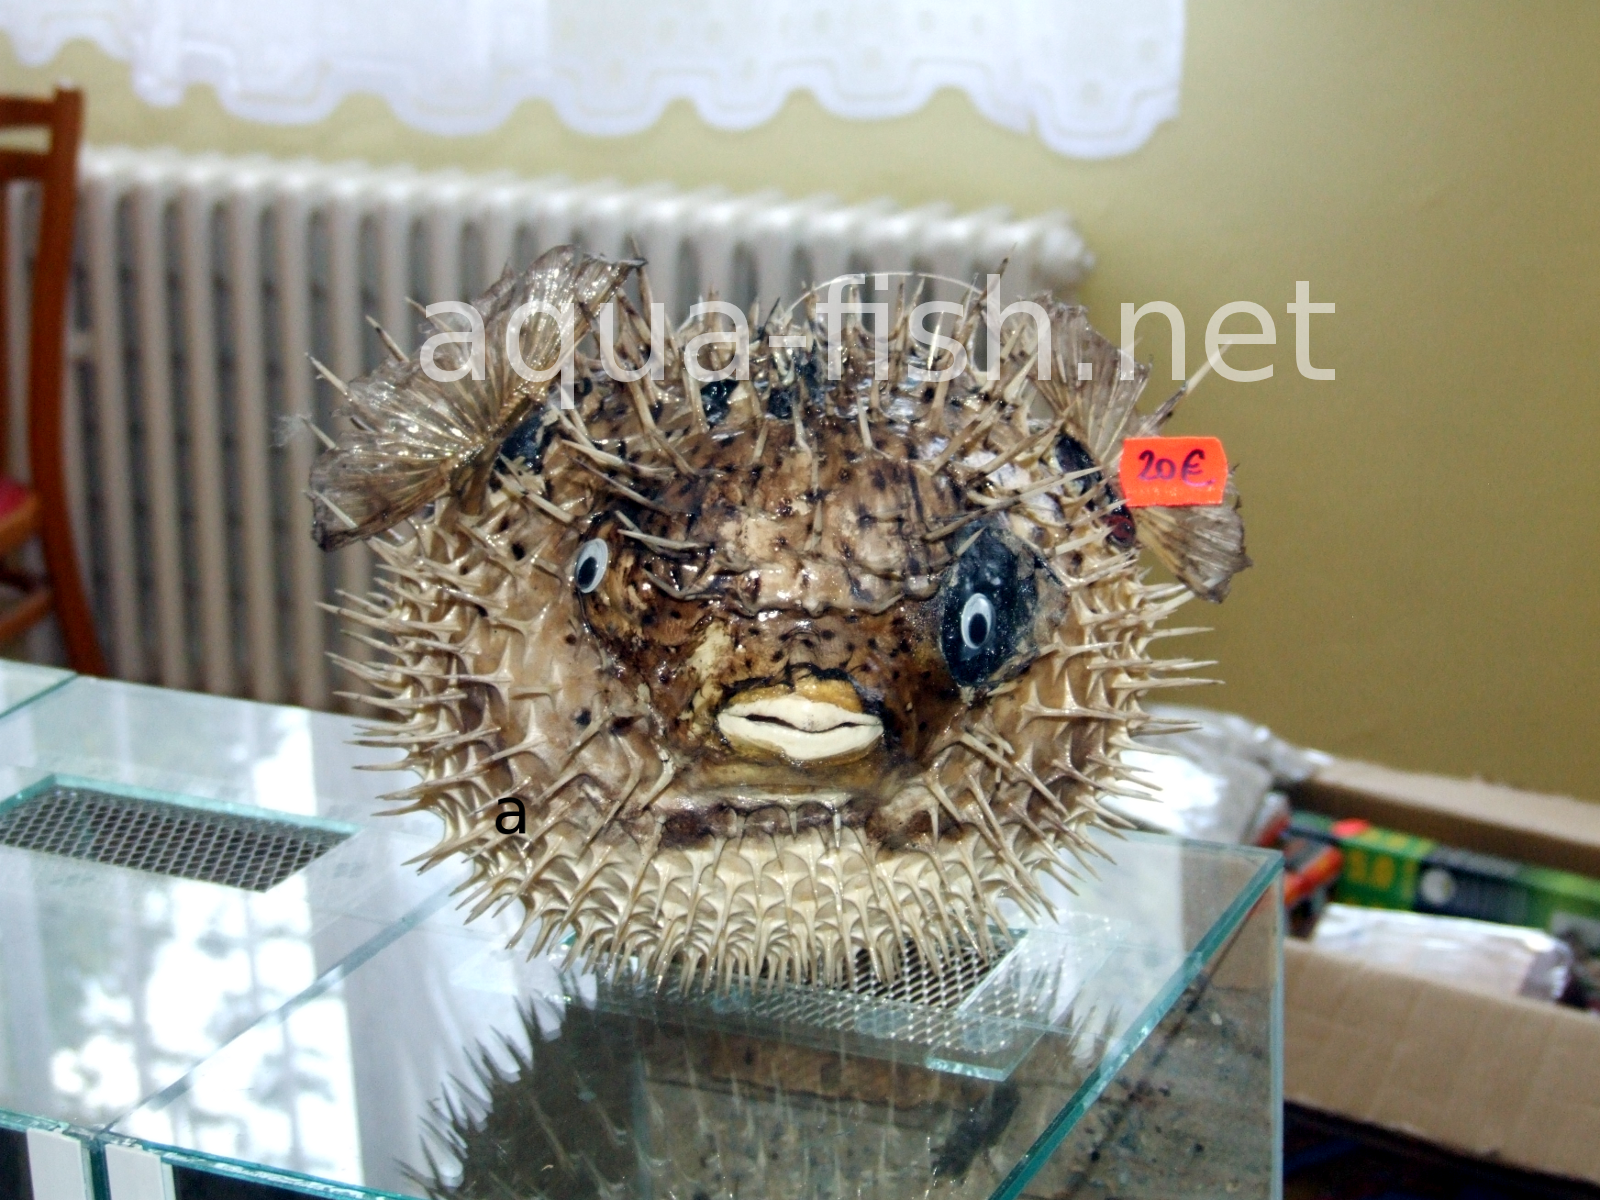 Freshwater aquarium puffer fish questions - Saltwater Pufferfish Saltwater Pufferfish Resized Image